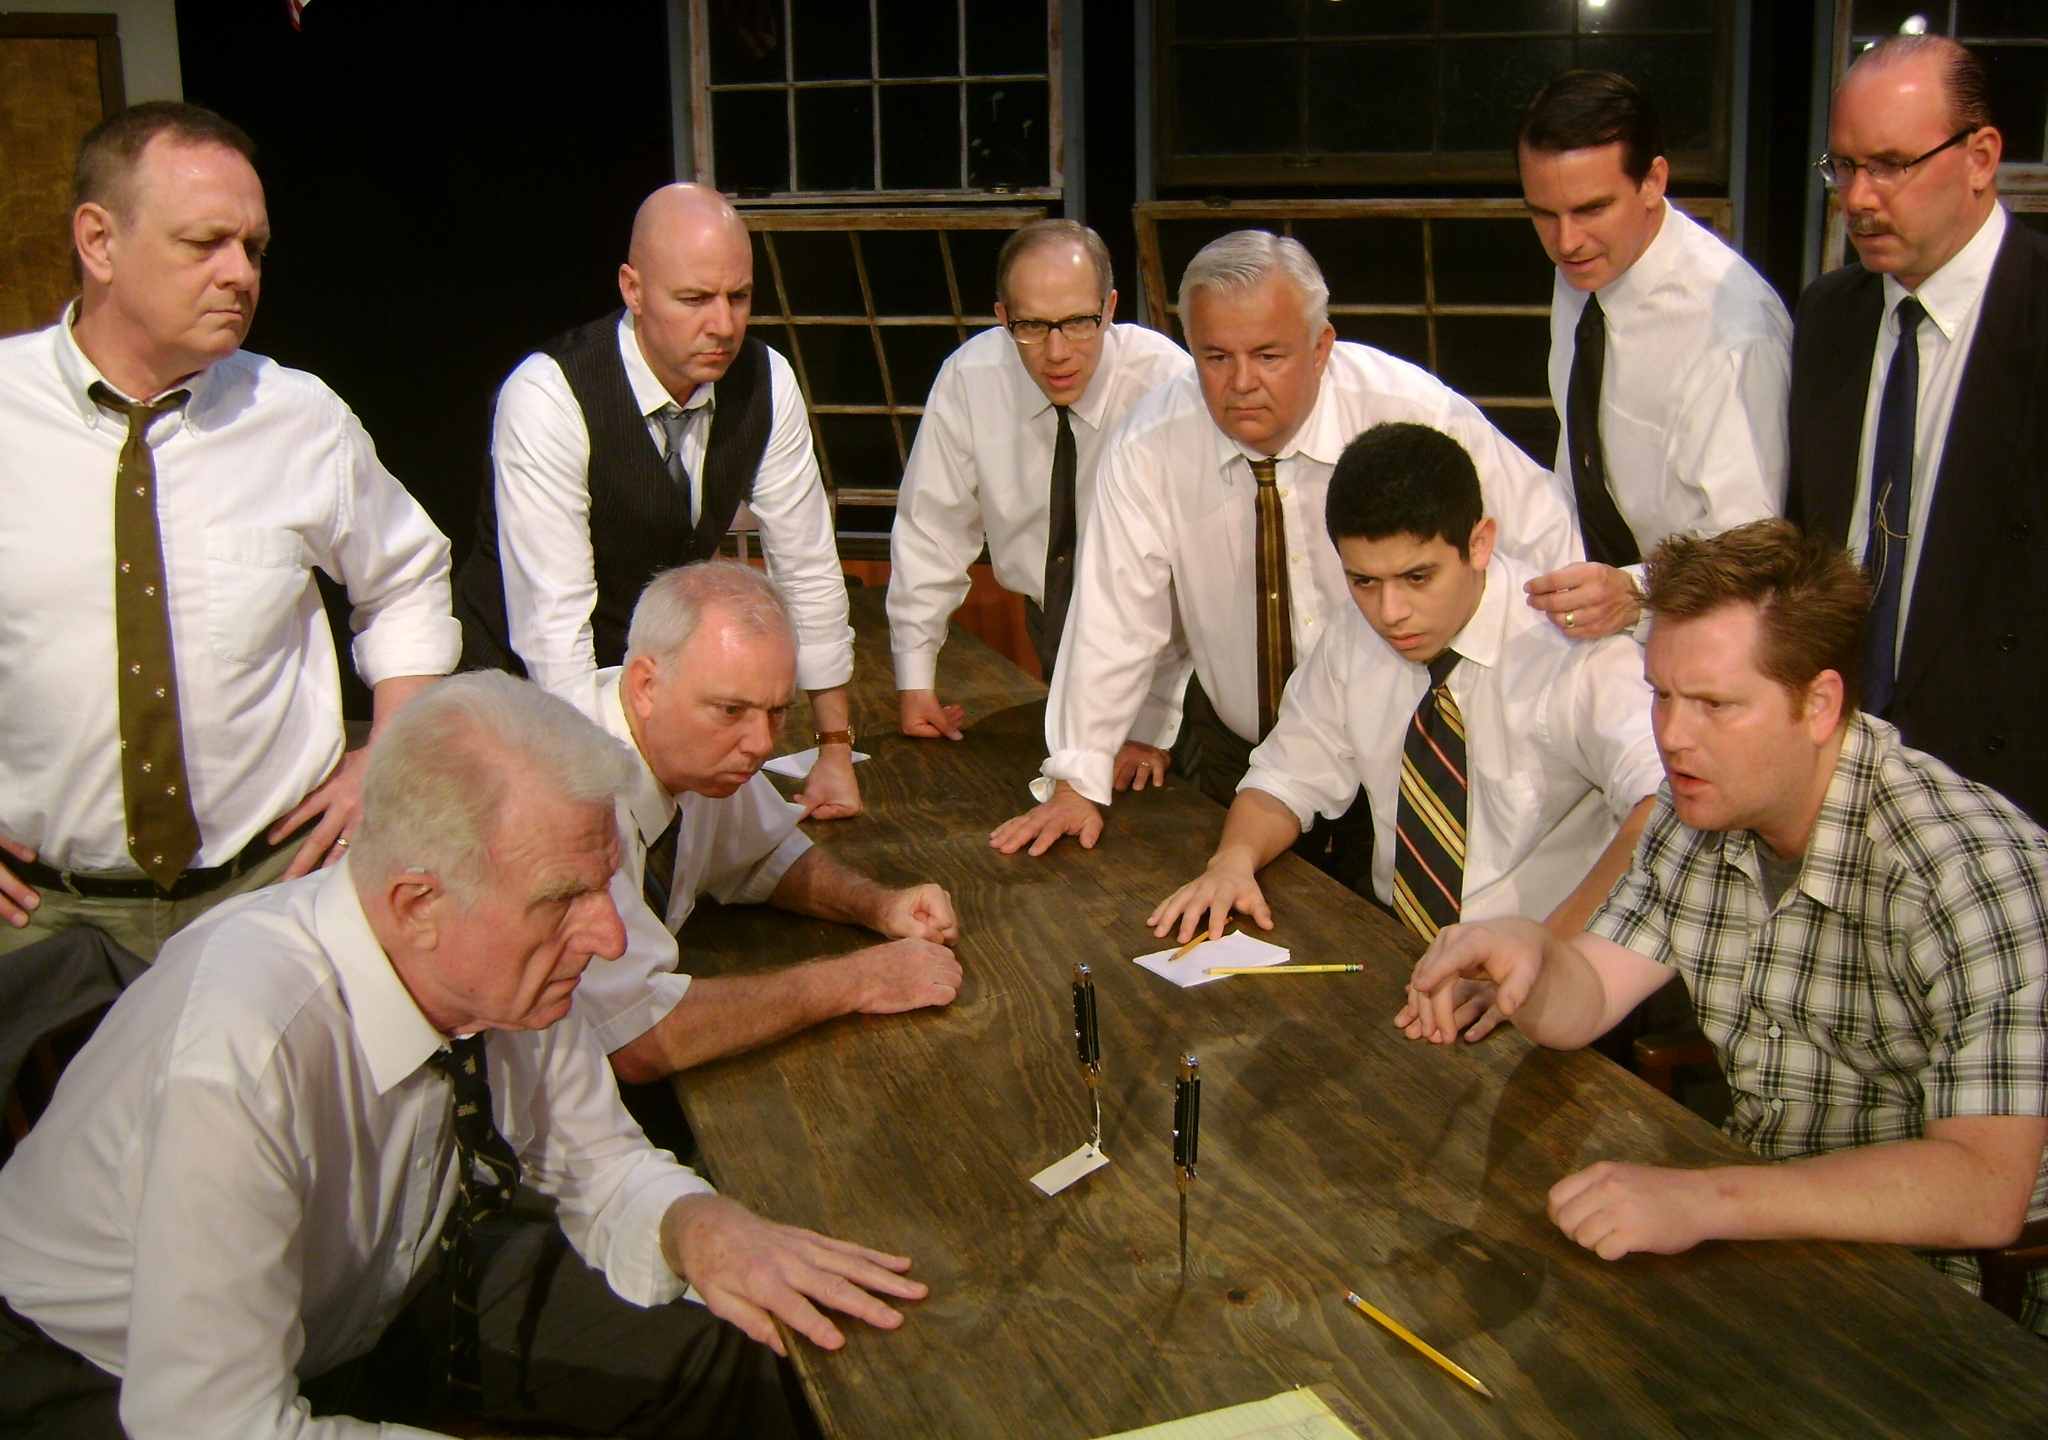 12 angry men essays home 12 angry men essays middot urban nu sense